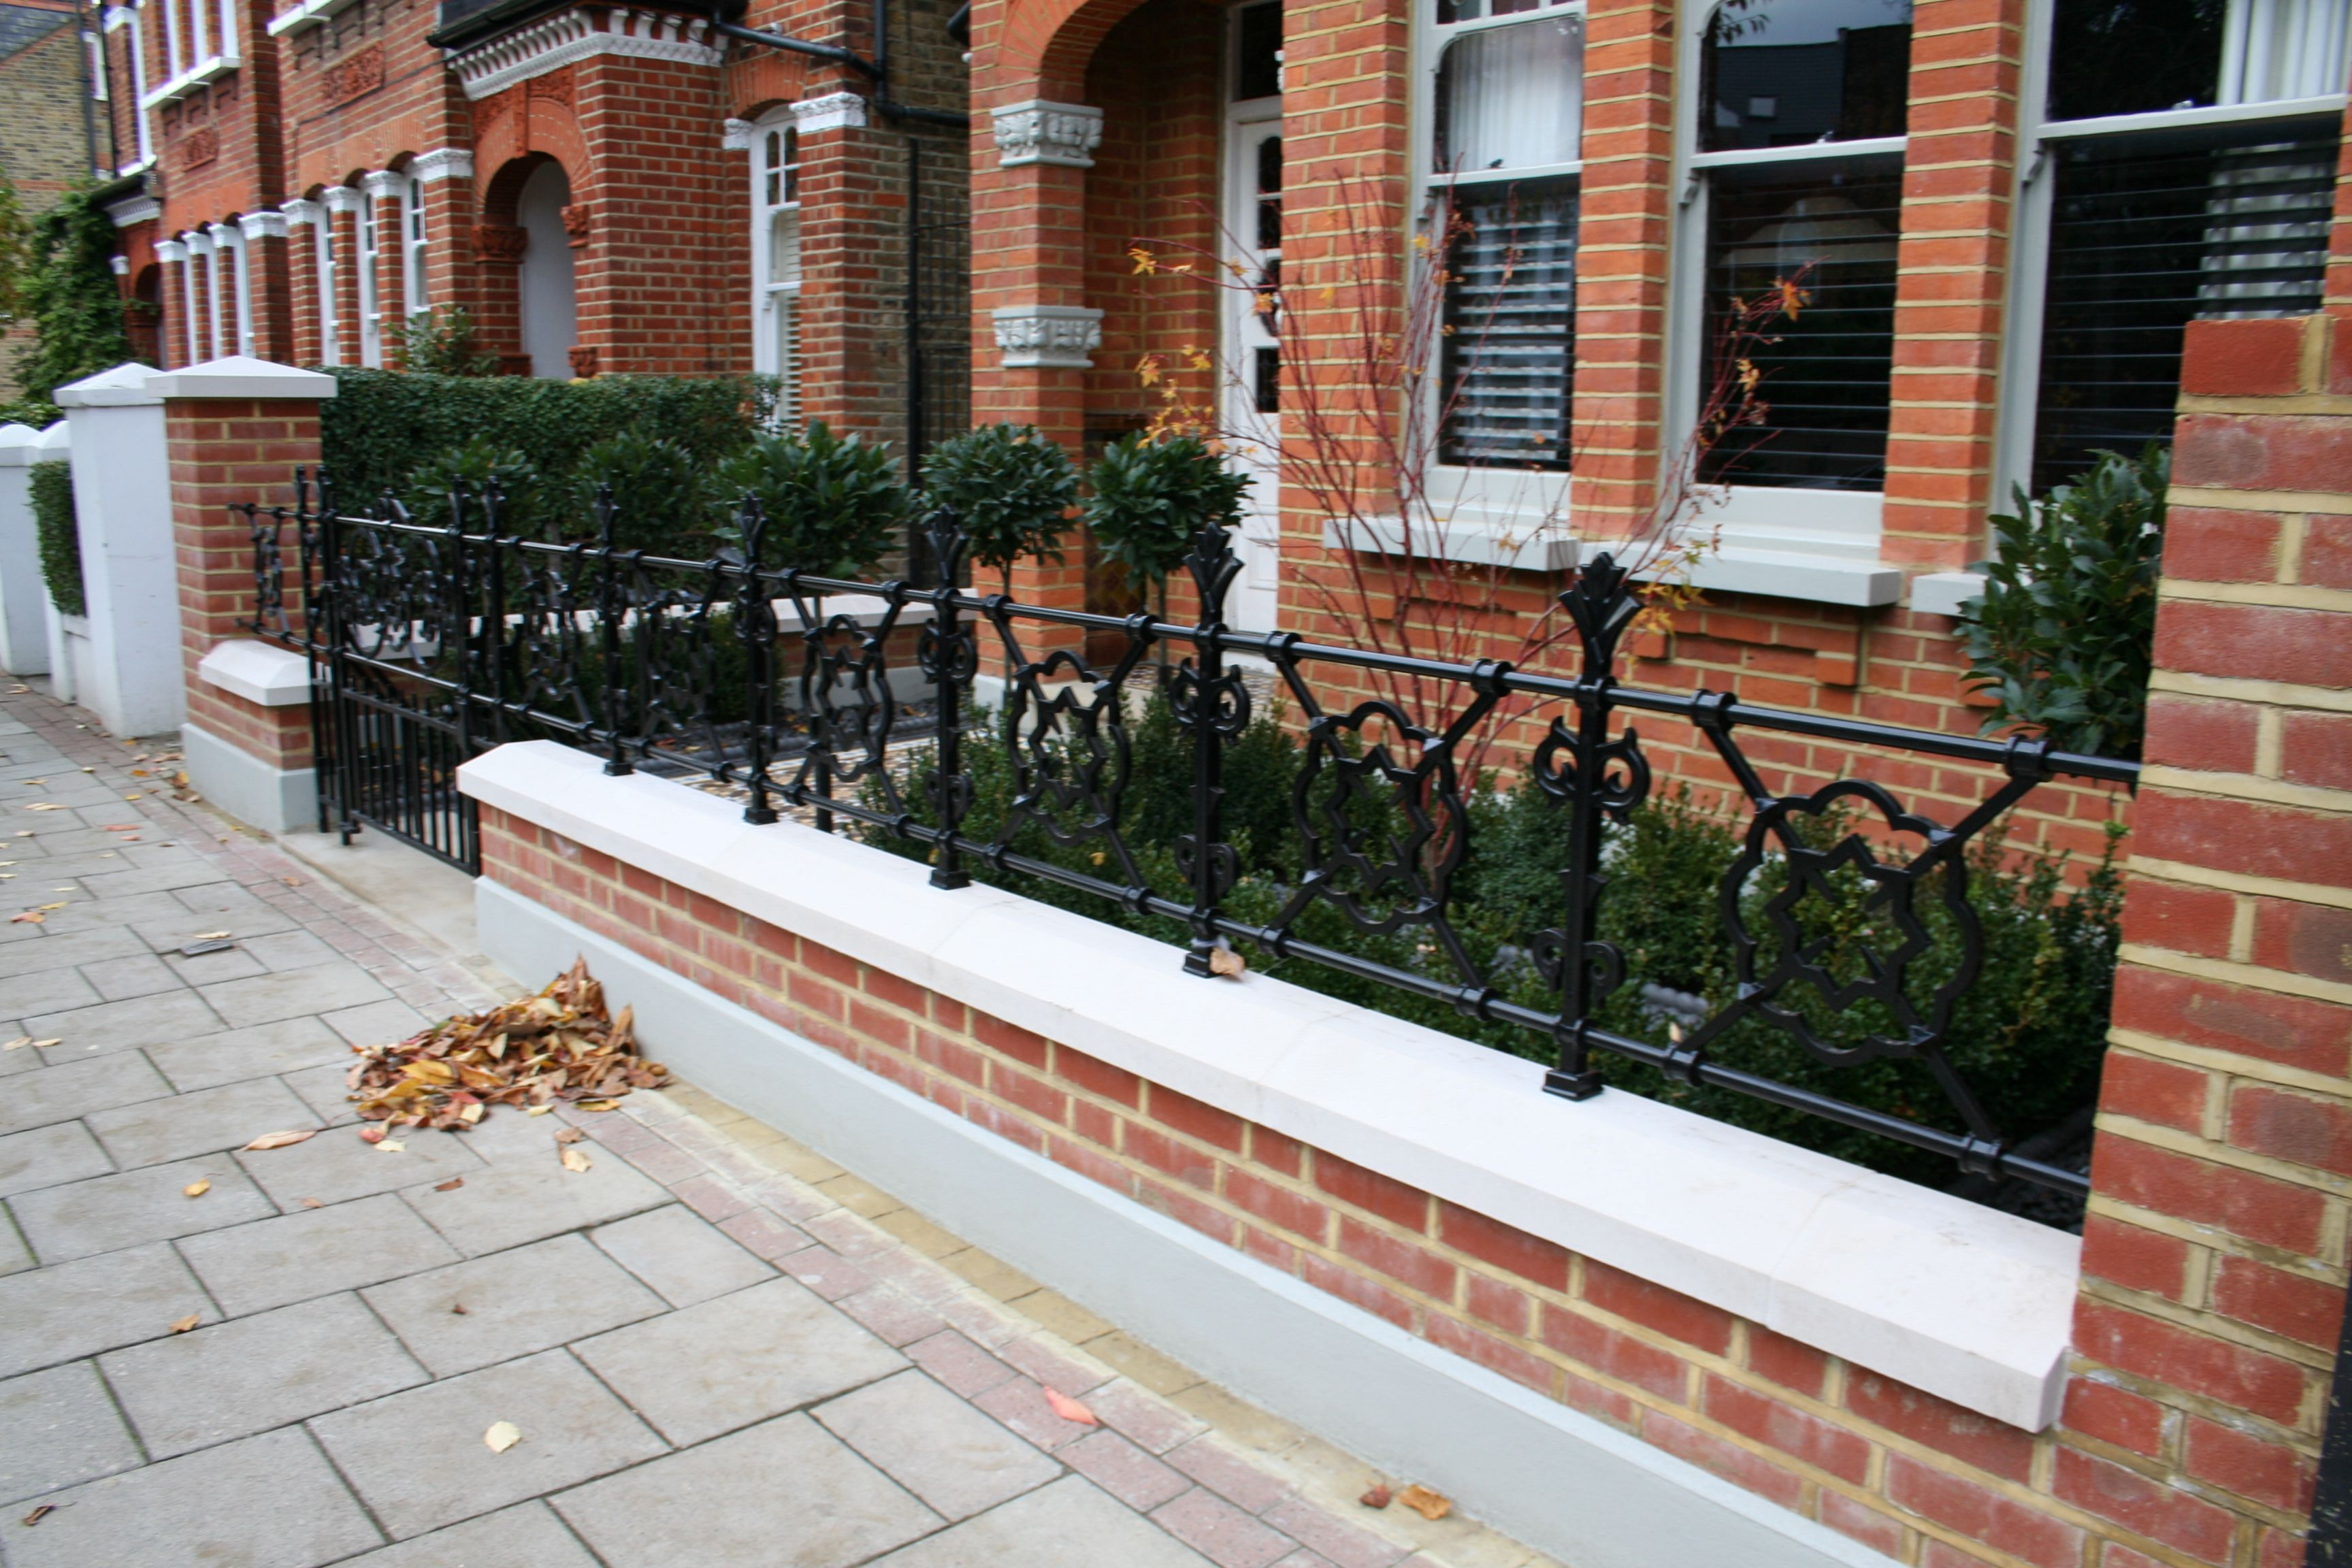 Stylish red brick wall and black railings in London front